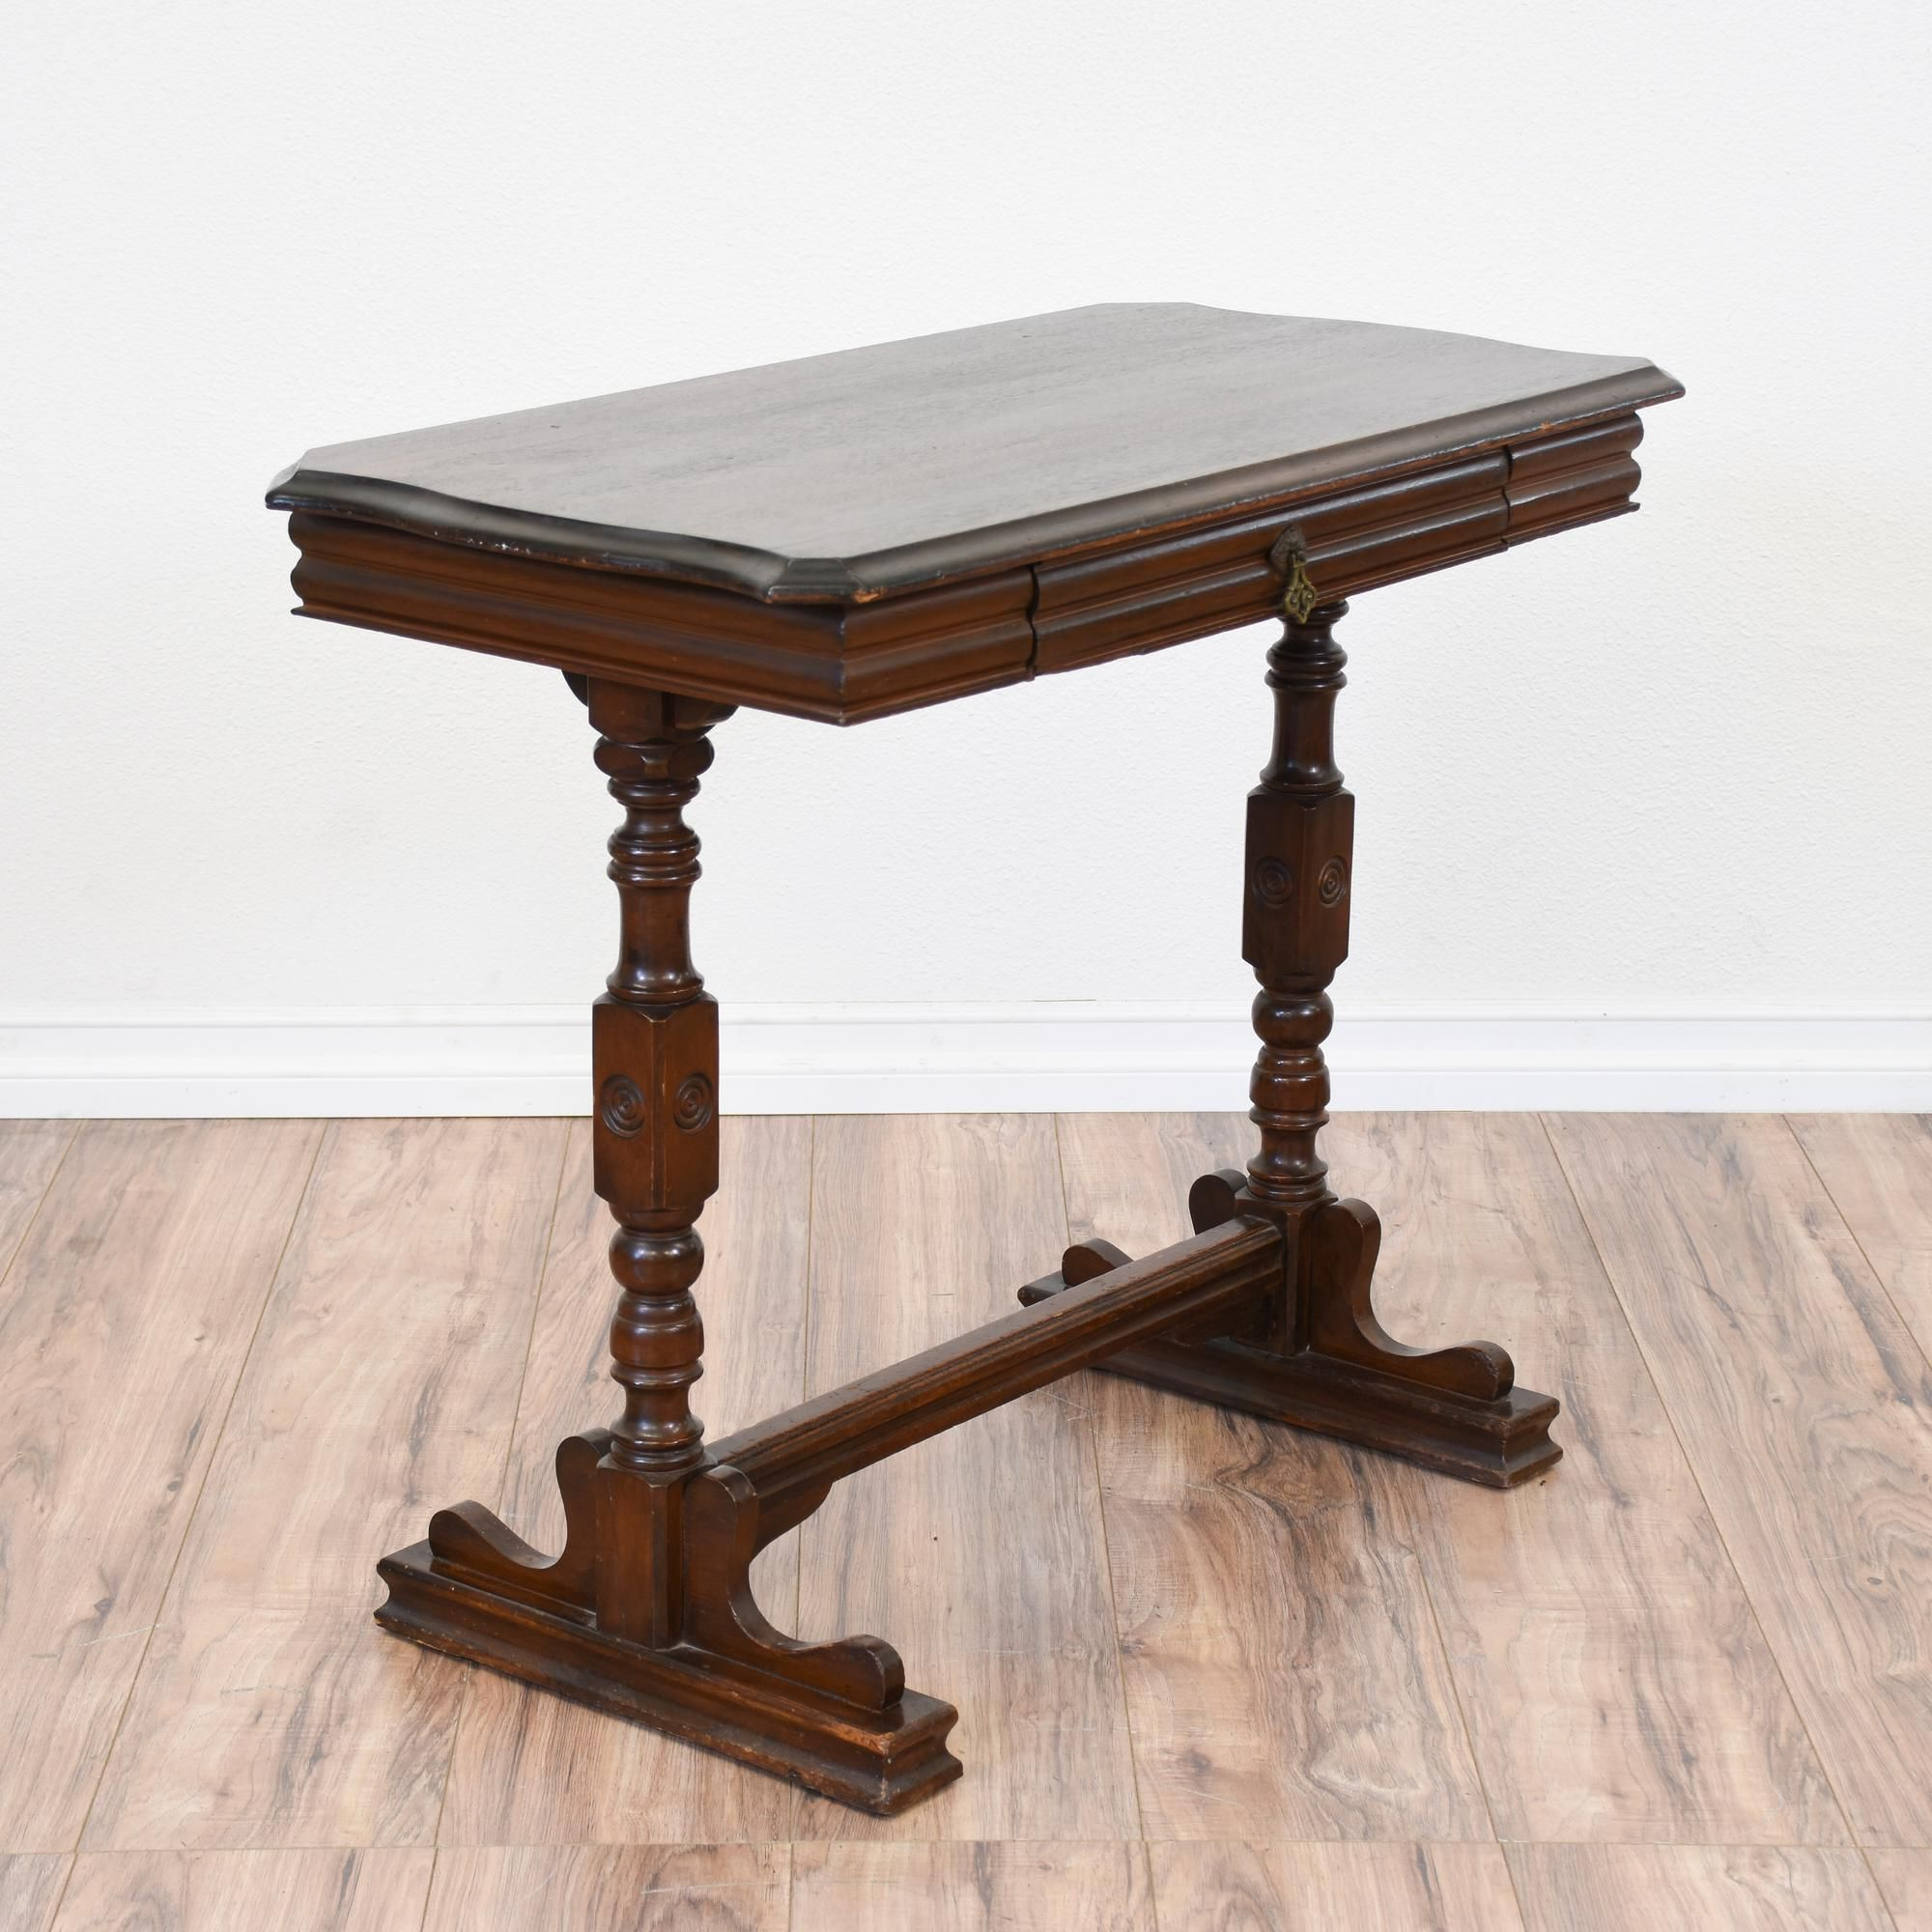 This console table is featured in a solid wood with a glossy dark this console table is featured in a solid wood with a glossy dark cherry finish geotapseo Choice Image